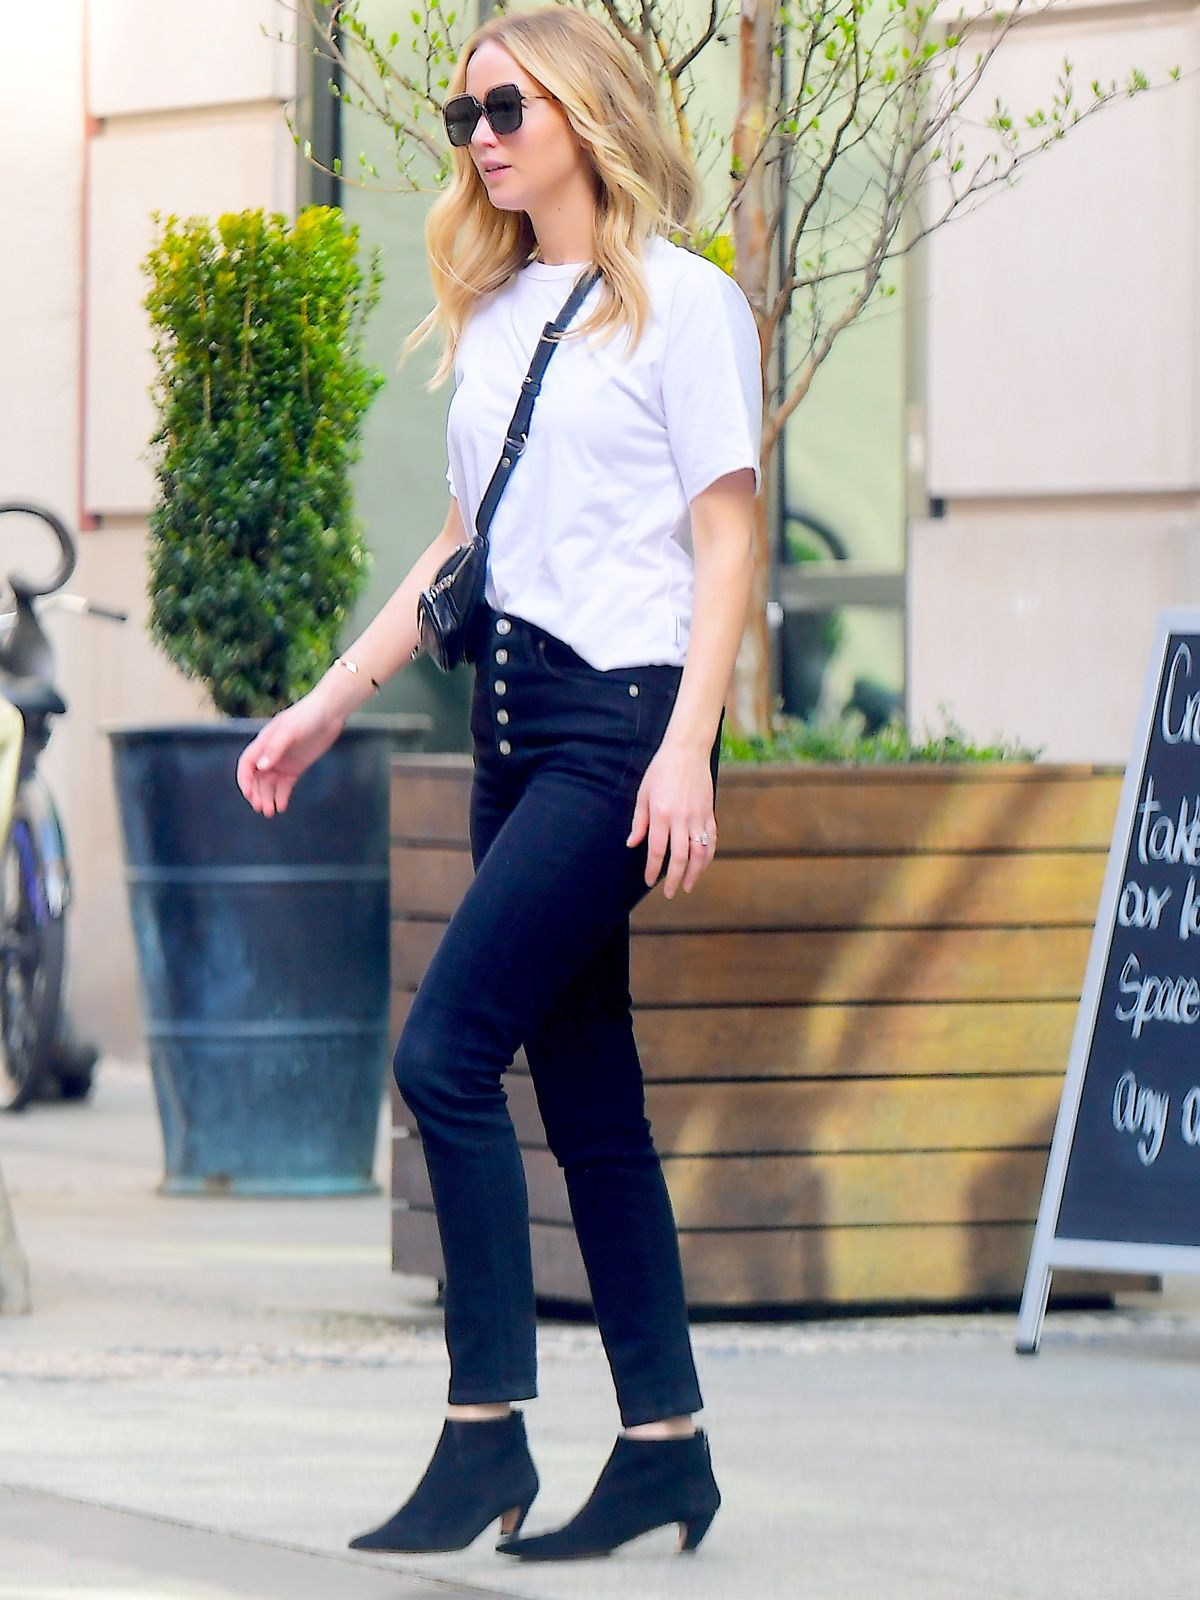 Yep, Jennifer Lawrence Made a White Tee and Skinny Jeans Look Cool